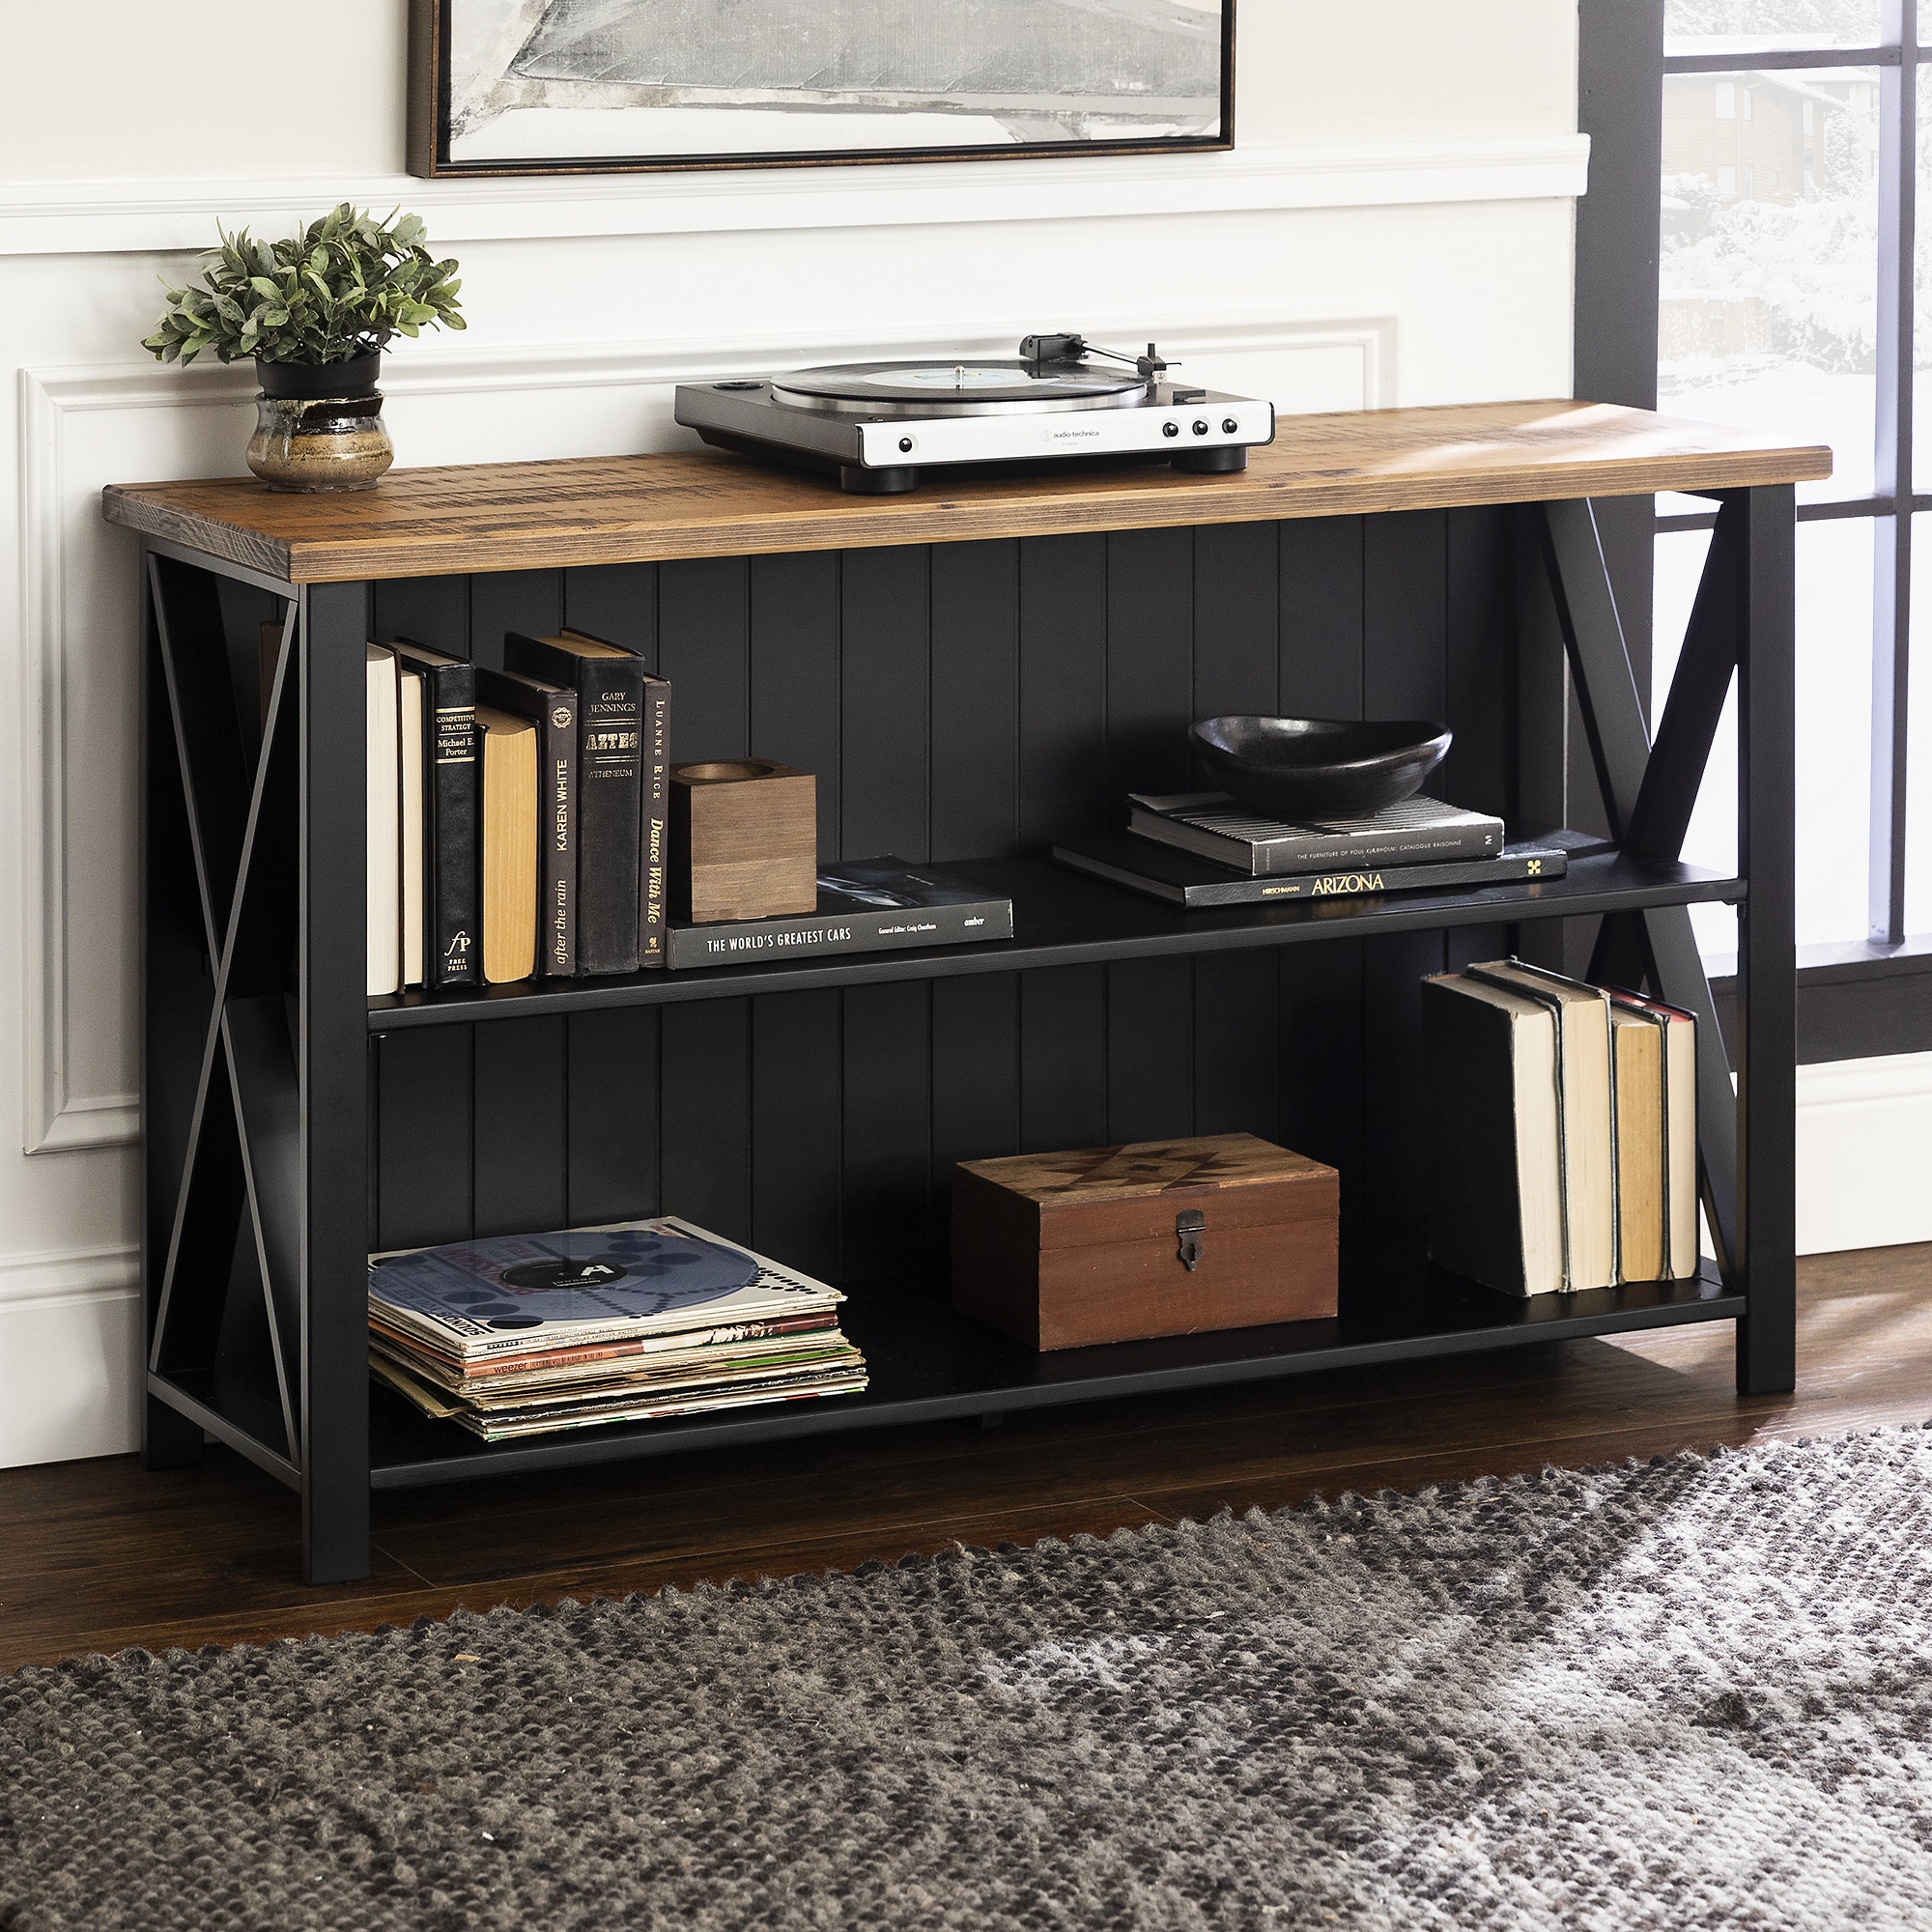 The tan and black console